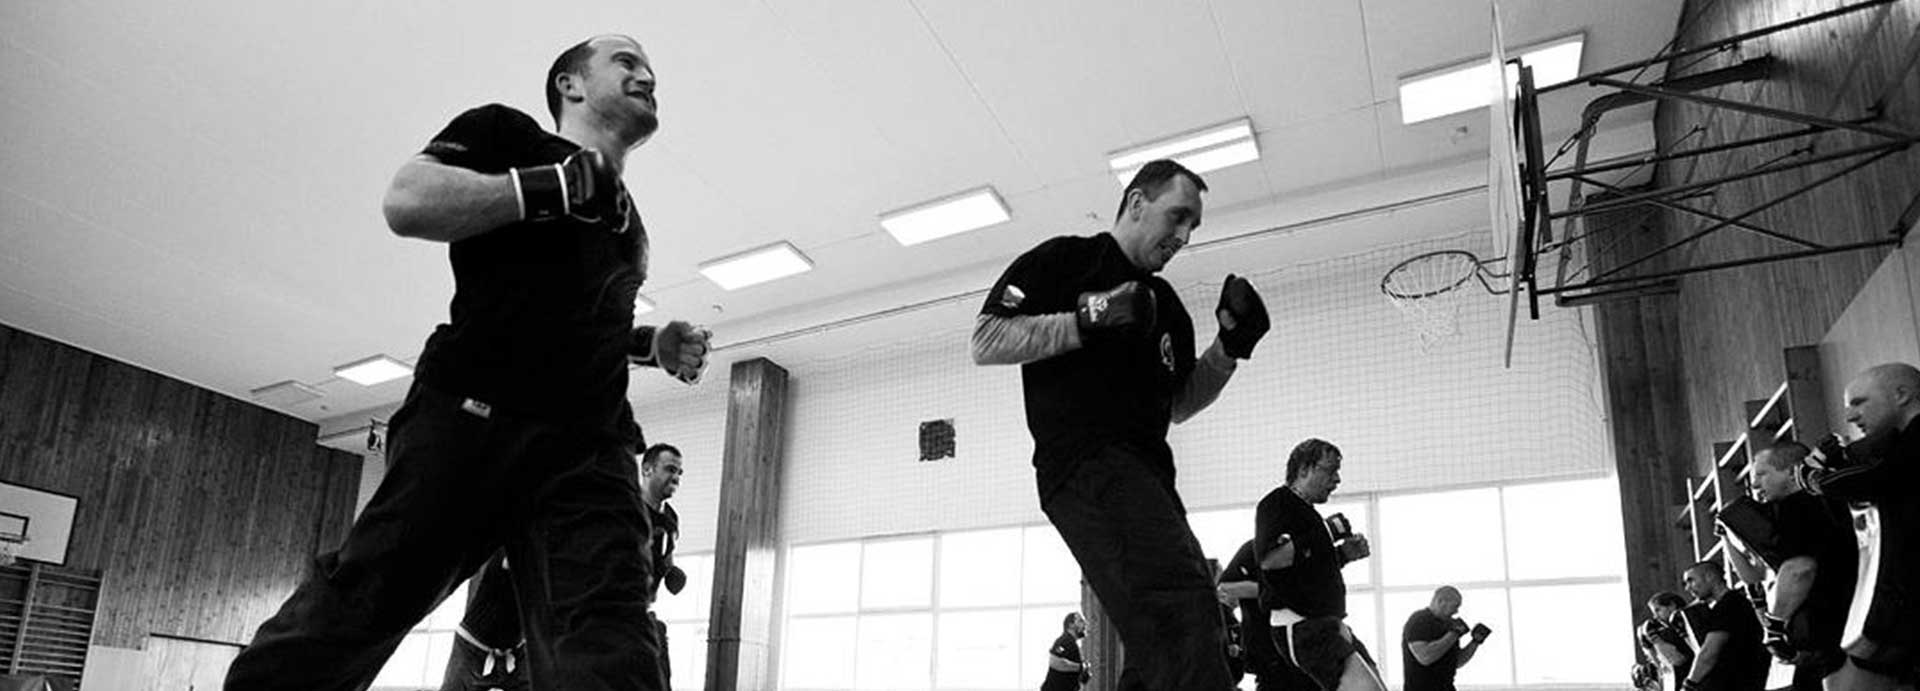 Krav Maga Classes in London